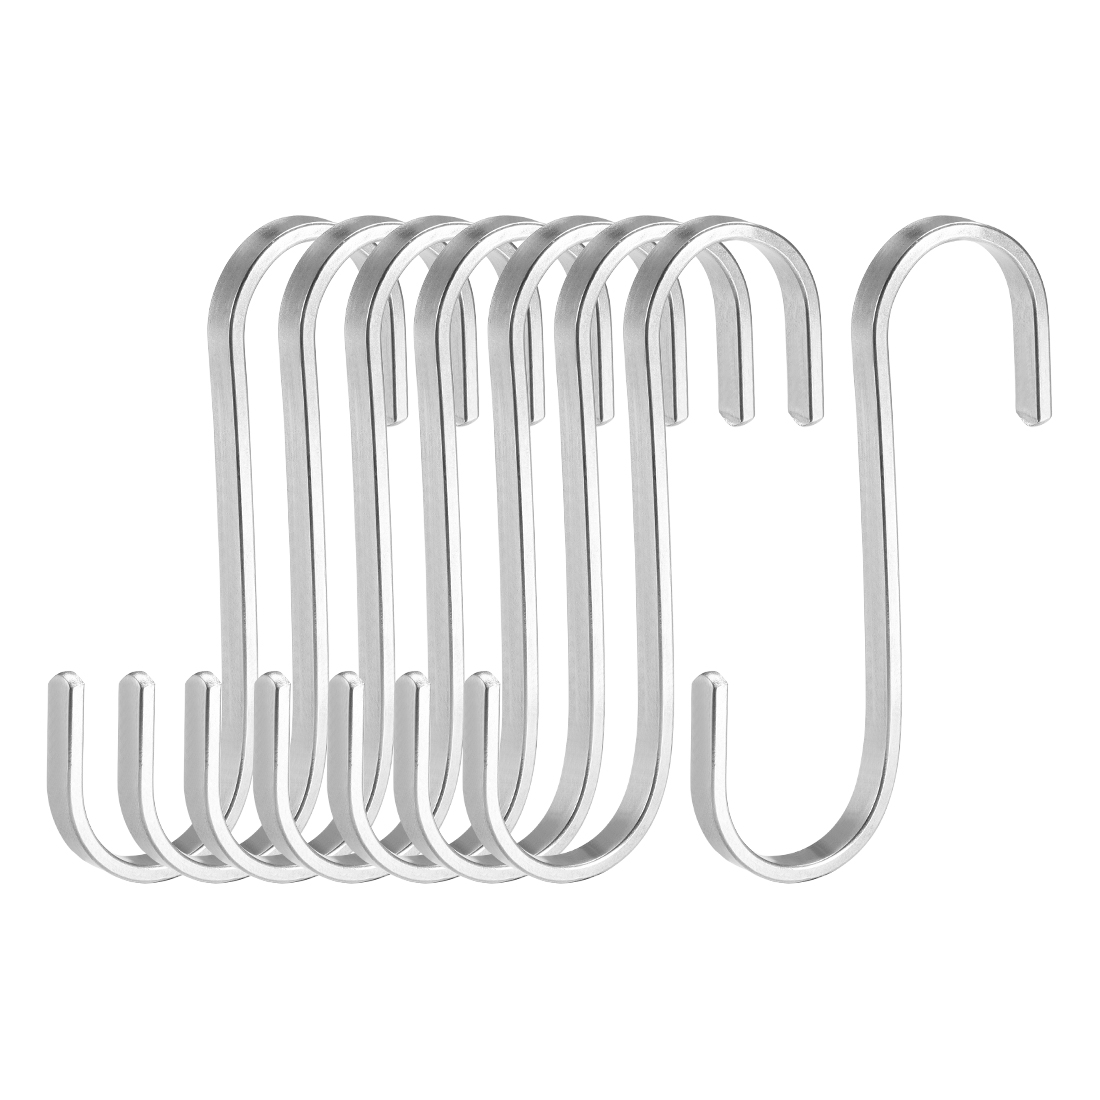 "Stainless Steel S Hooks 3"" Flat S Shaped Hangers Multiple Uses 8pcs"